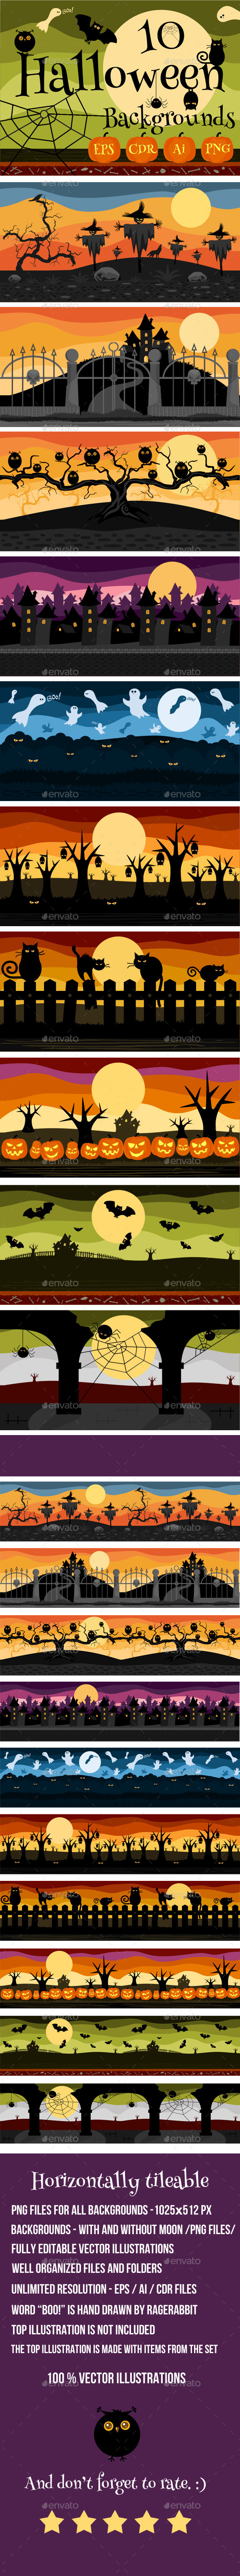 GraphicRiver 10 Halloween Game Backgrounds 8961841